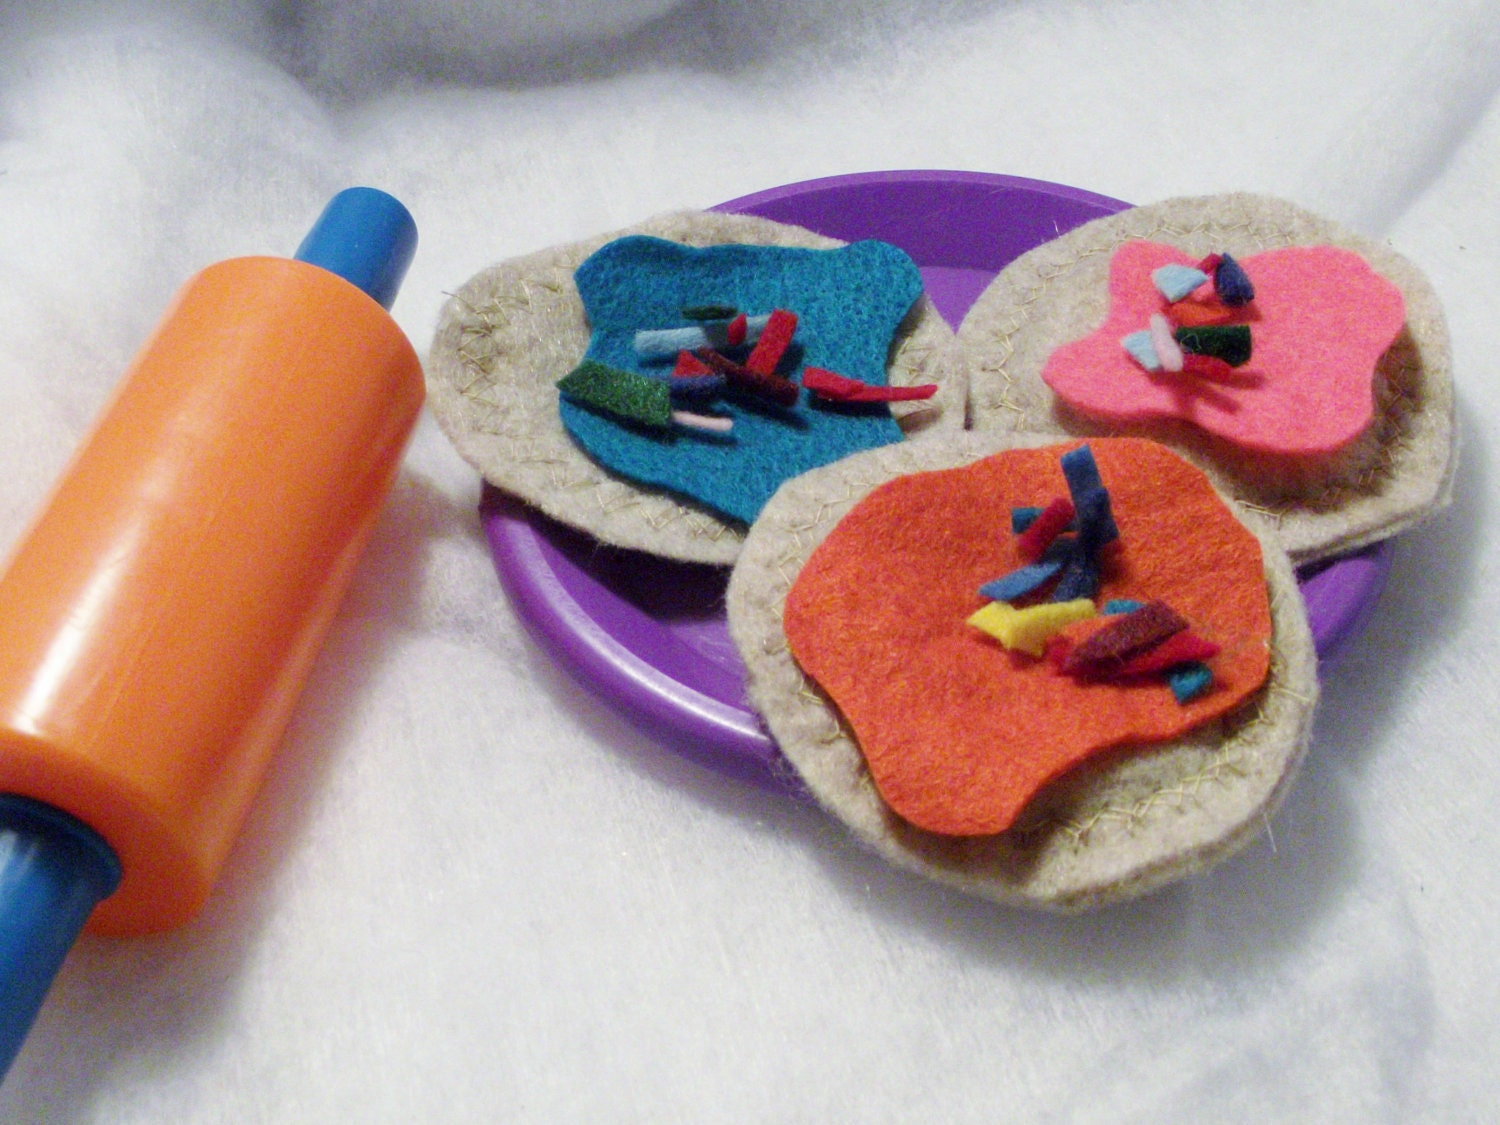 Sugar or Wheat Cookies, Dough, Sprinkles and Frosting set that are Play Felt Food